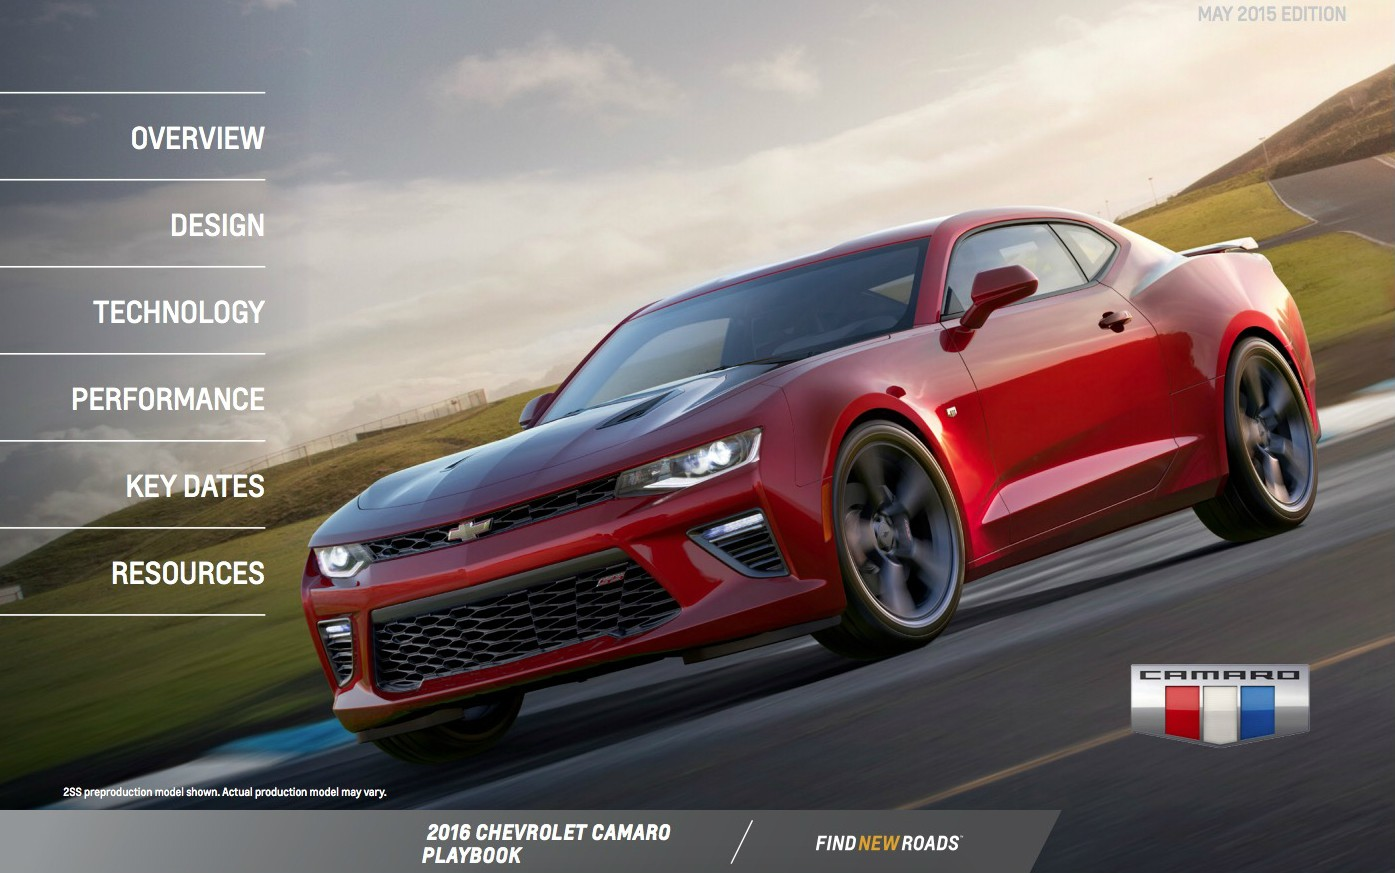 2016 Chevrolet Camaro Playbook Contains 15 Pages Of